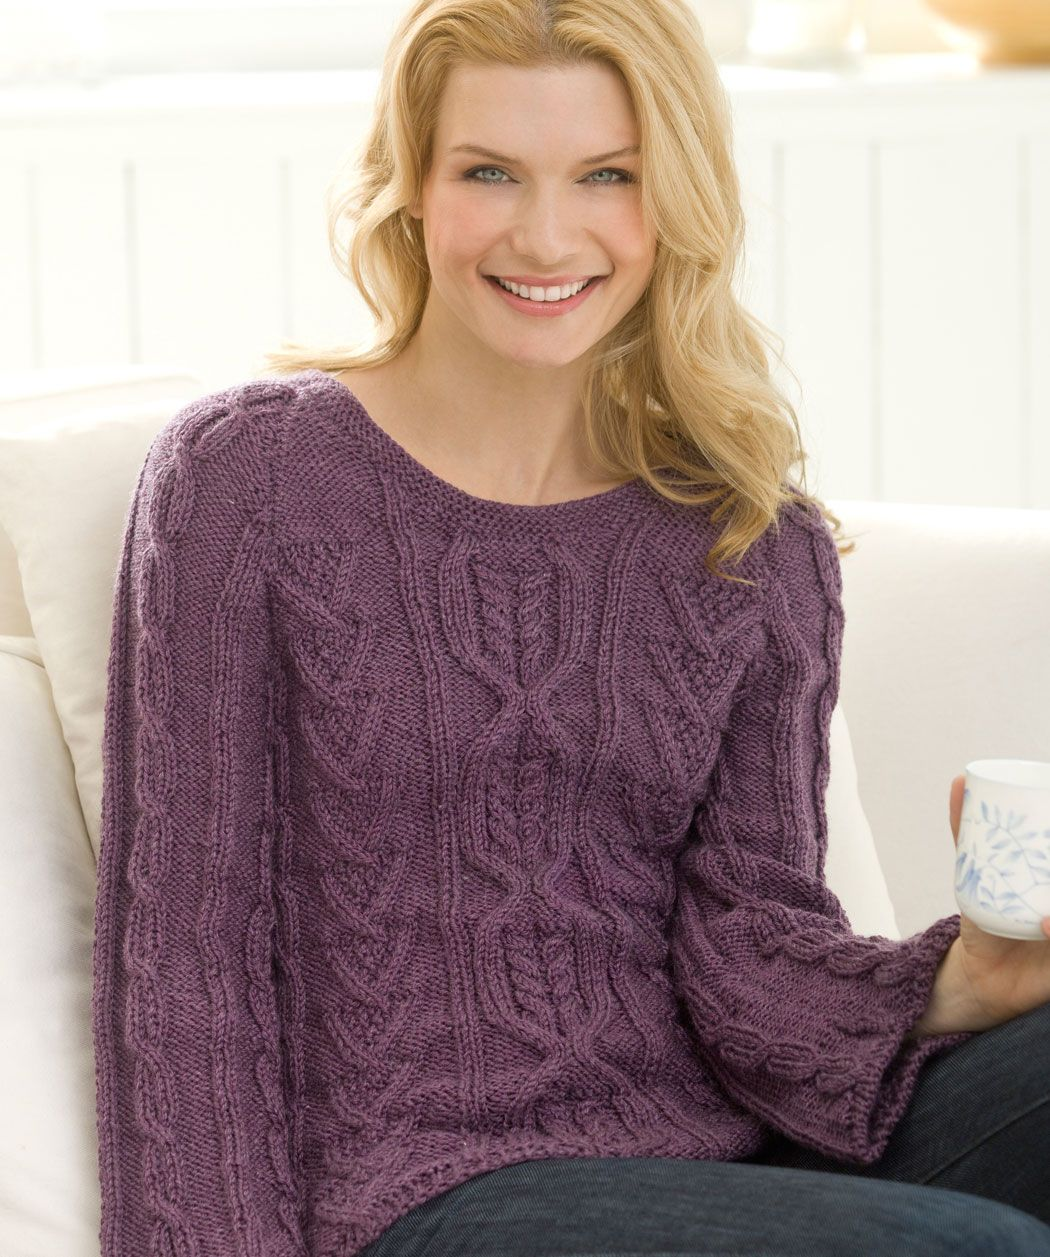 Knitting Patterns Modern Jumpers : New Aran Sweater - My mouth hit the floor when I saw that its a Red Hear...